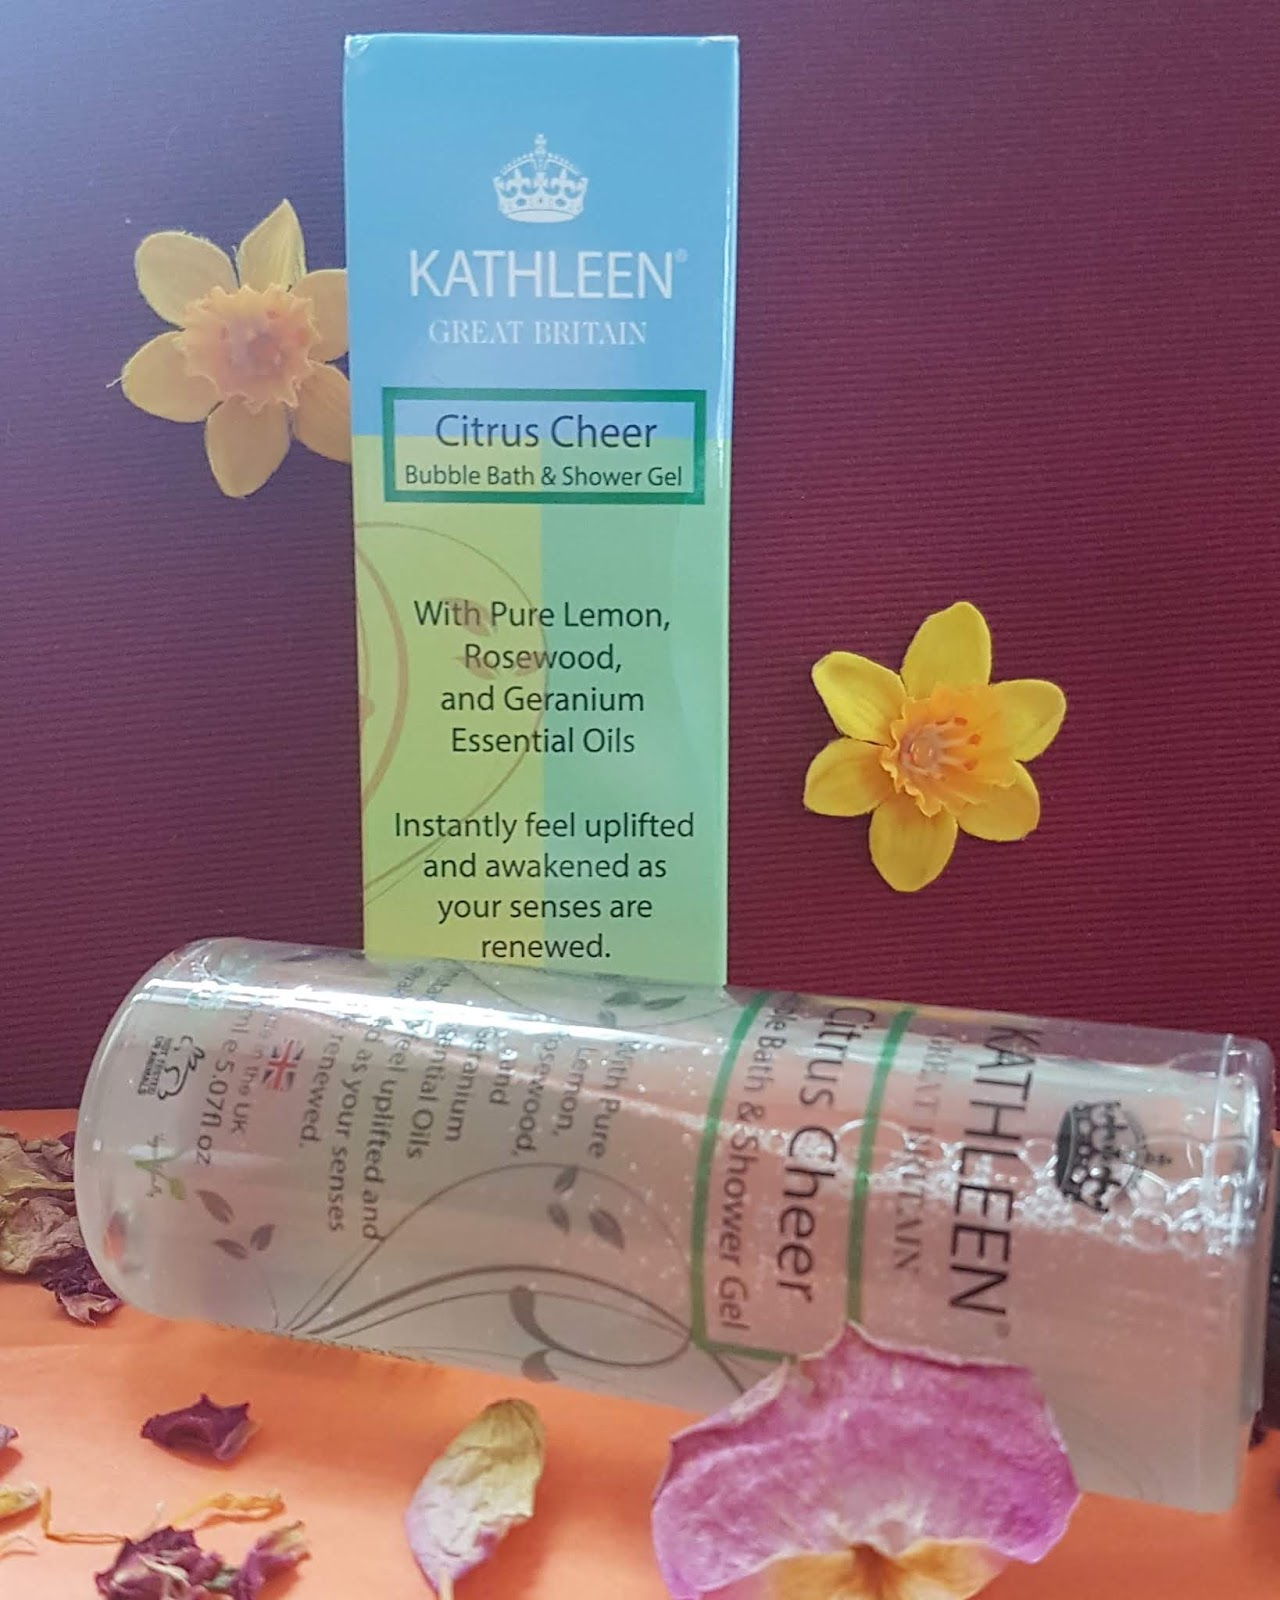 The Natural Beauty Box Review - Kathleen Natural Citrus Cheer Bubble Bath & Shower Gel